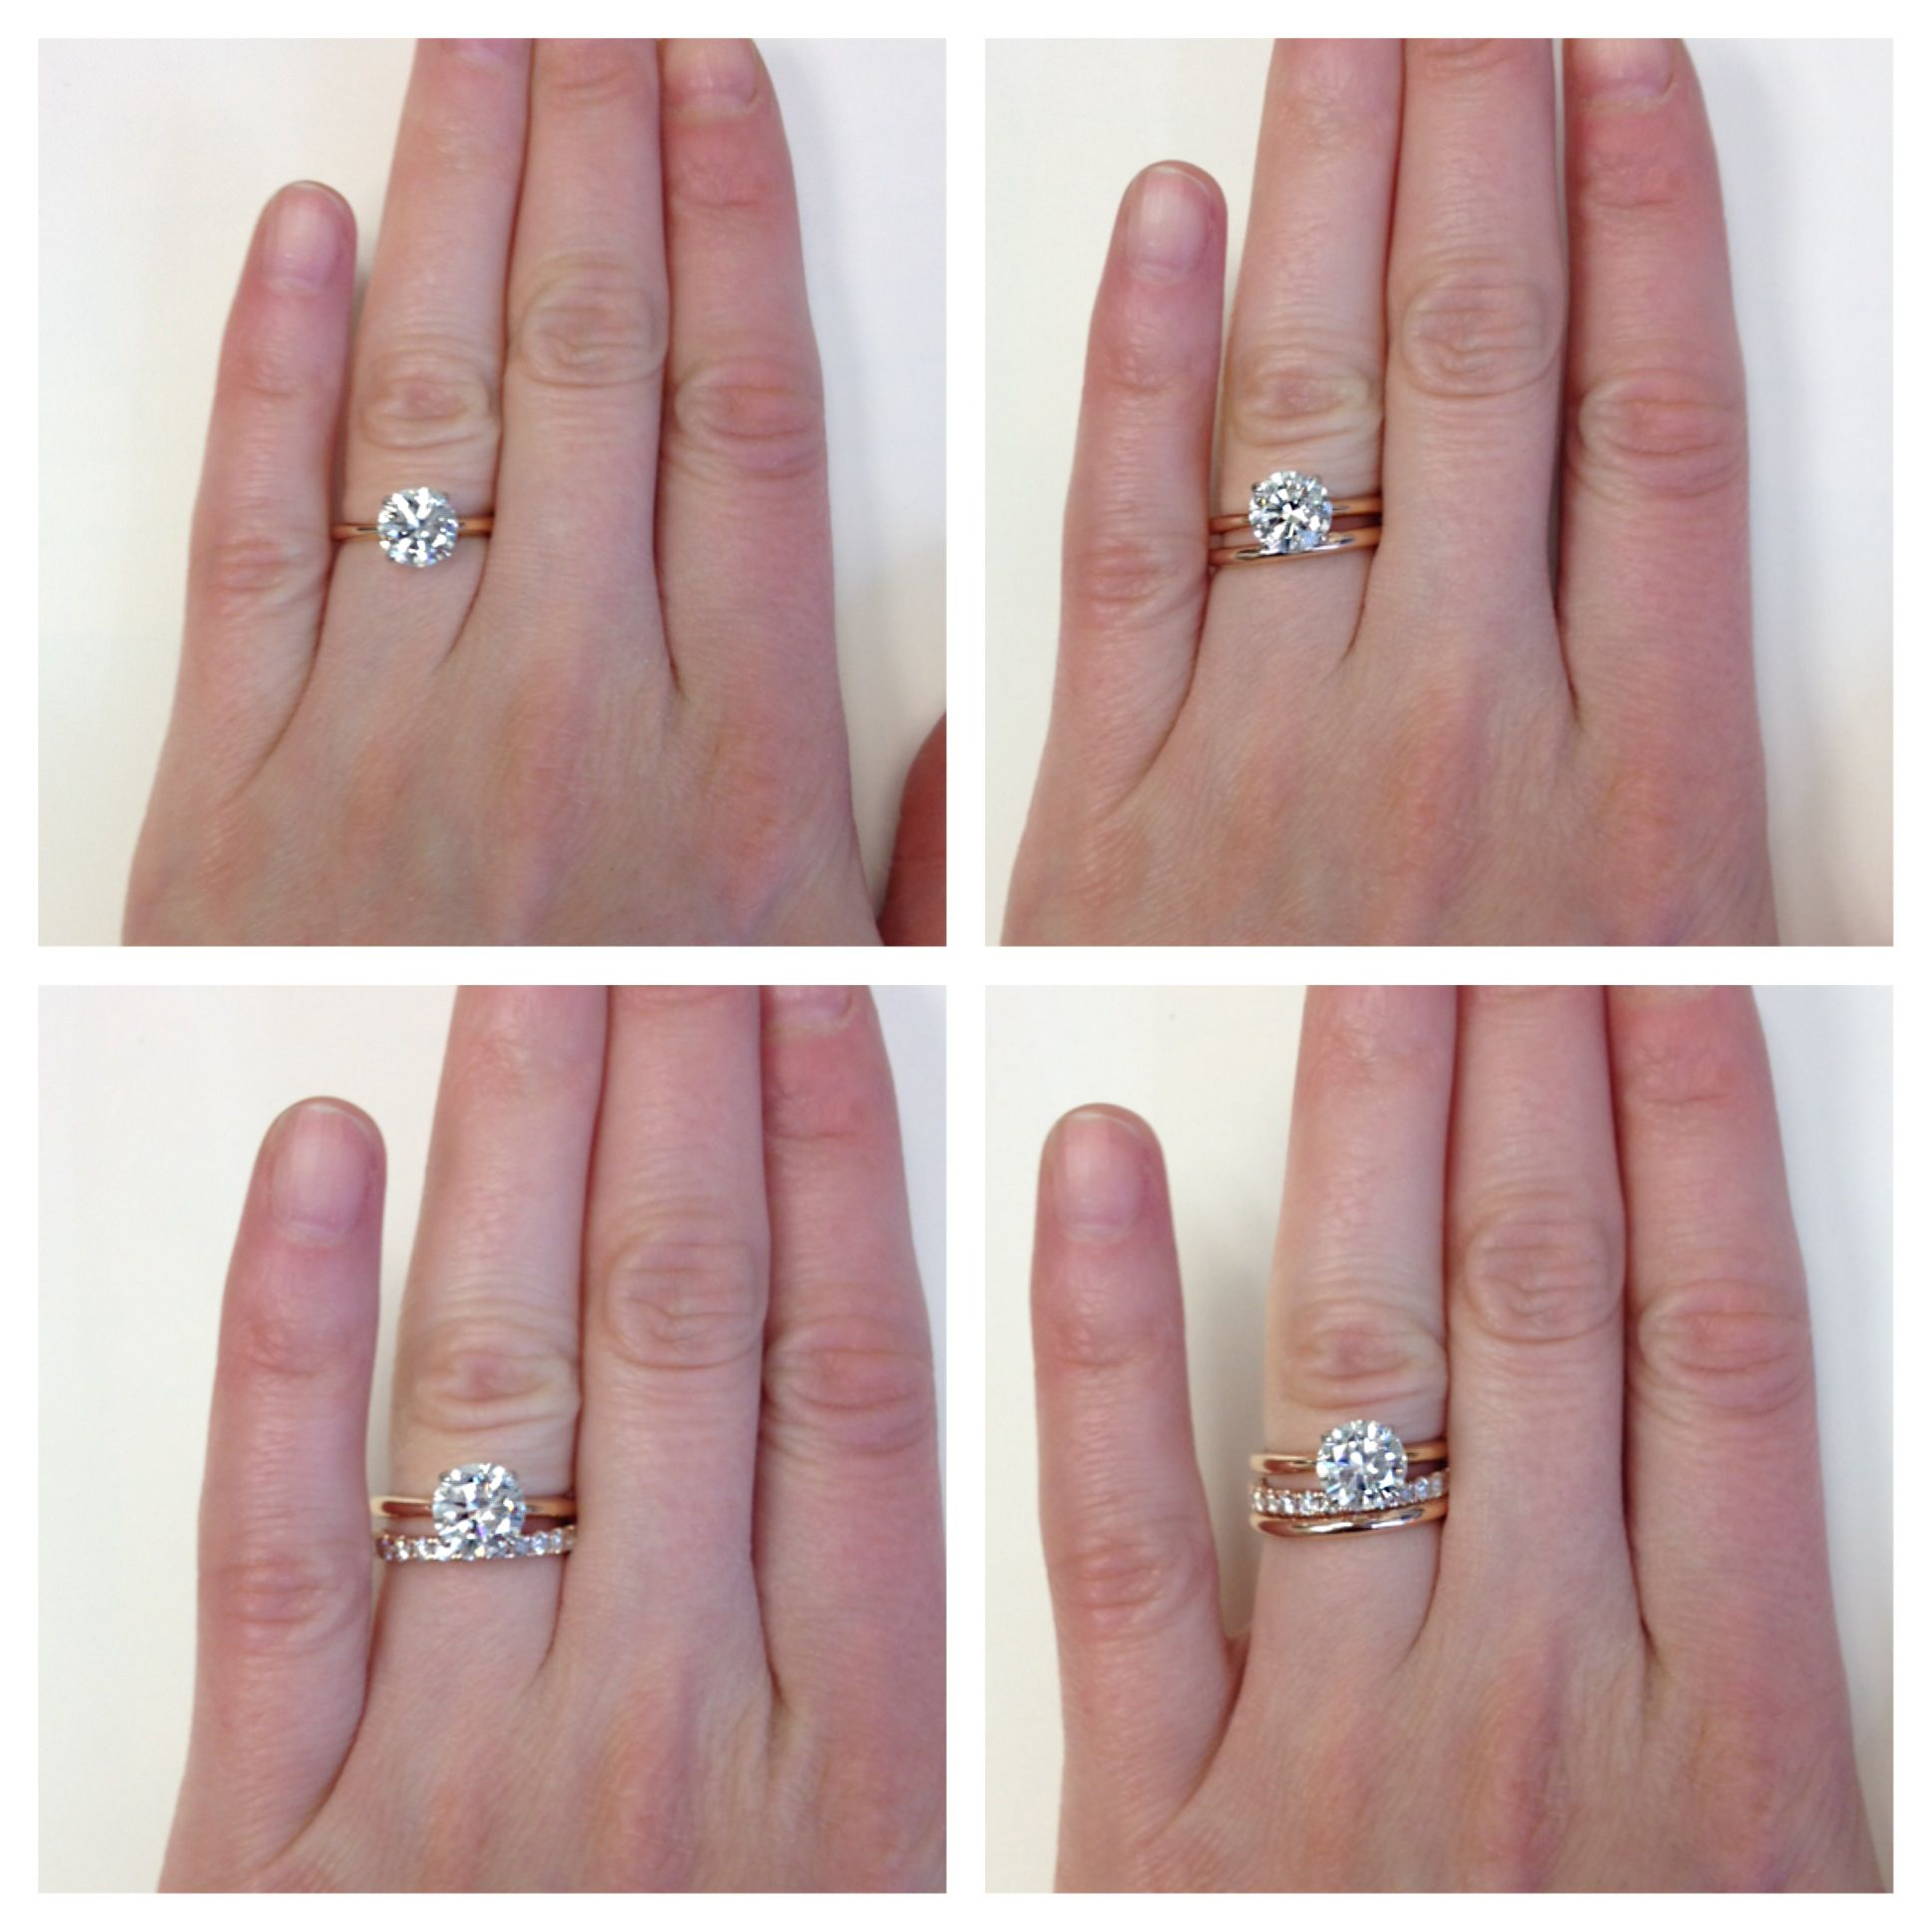 Types Of Ladies Wedding Rings How To Choose Your Signature Look Wedding Rings For Women Wedding Ring Bands Wedding Bands For Her